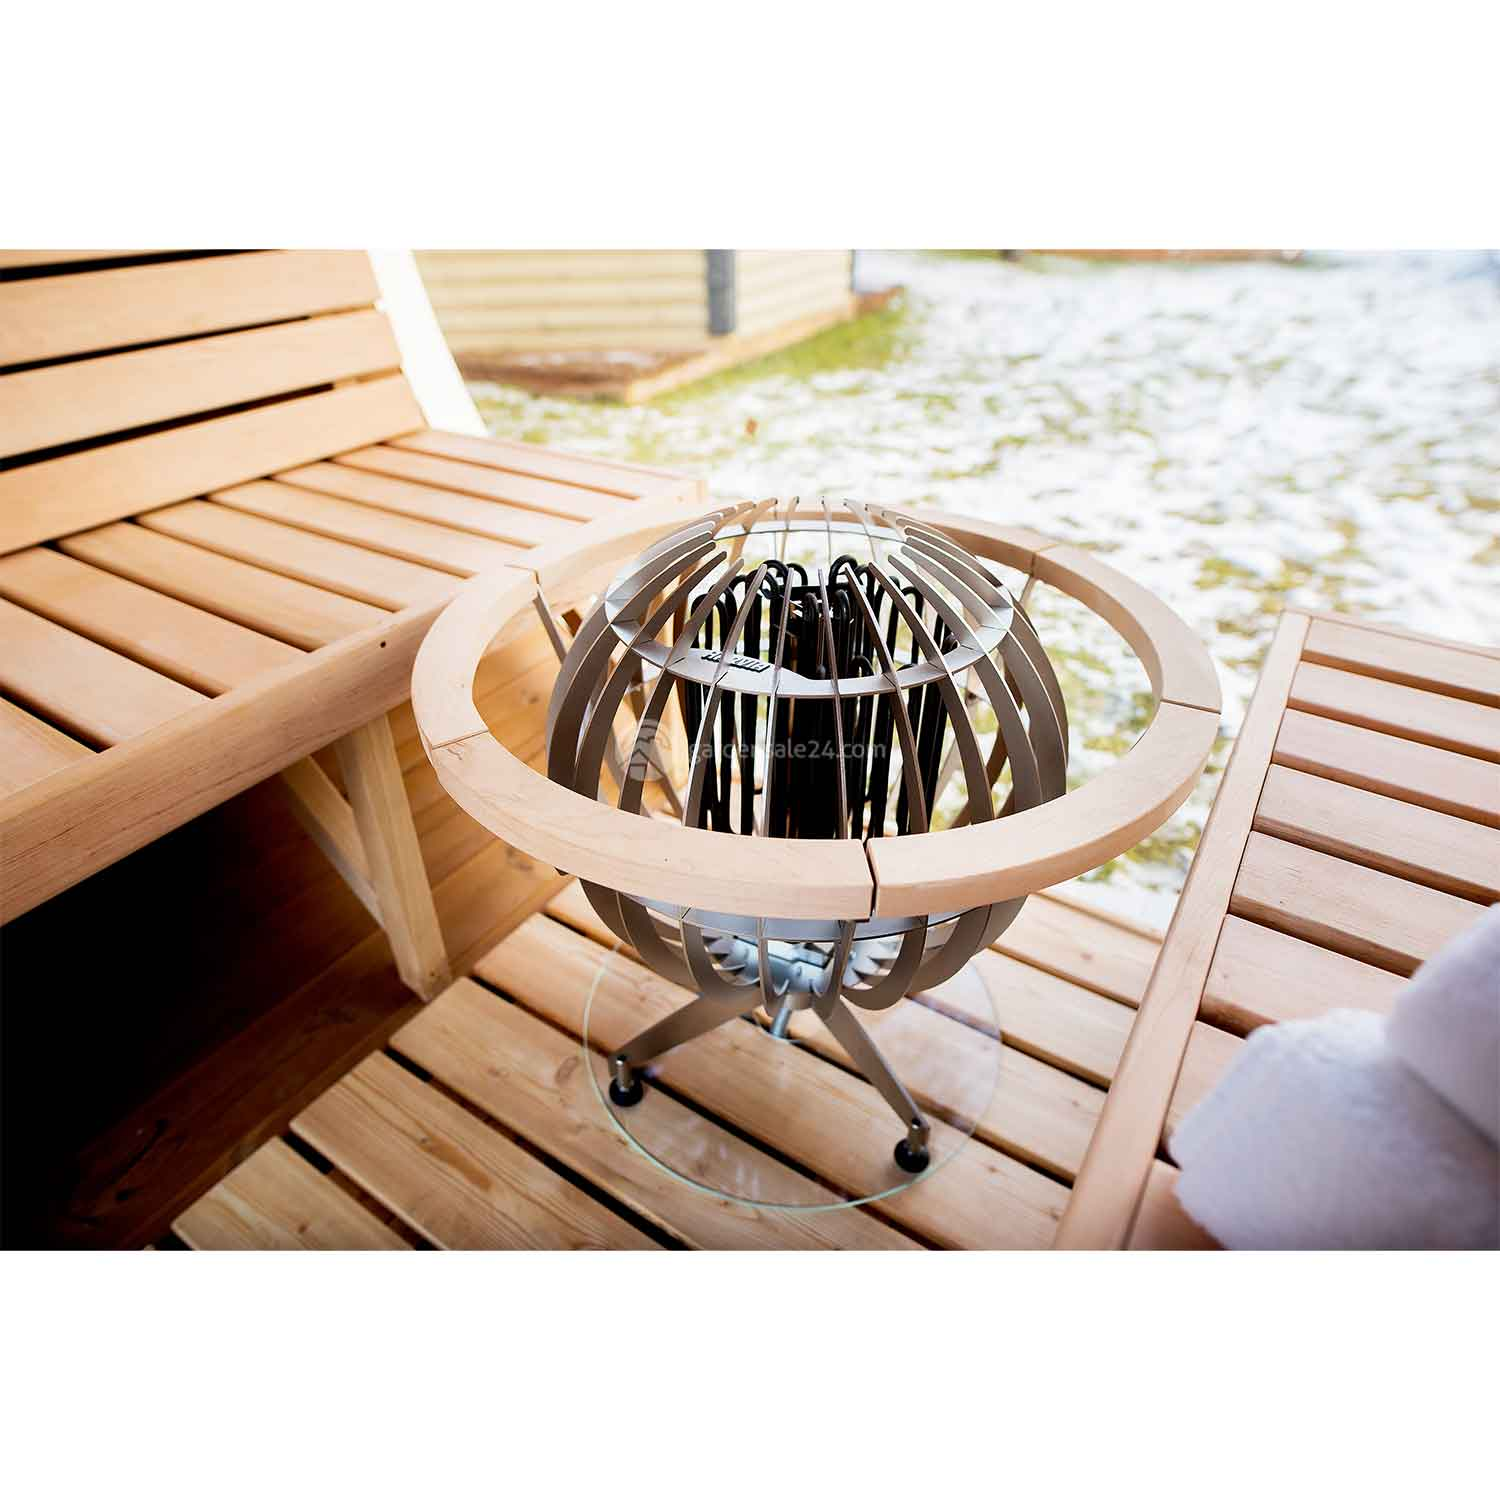 Luxury Barrel Sauna (3 m)